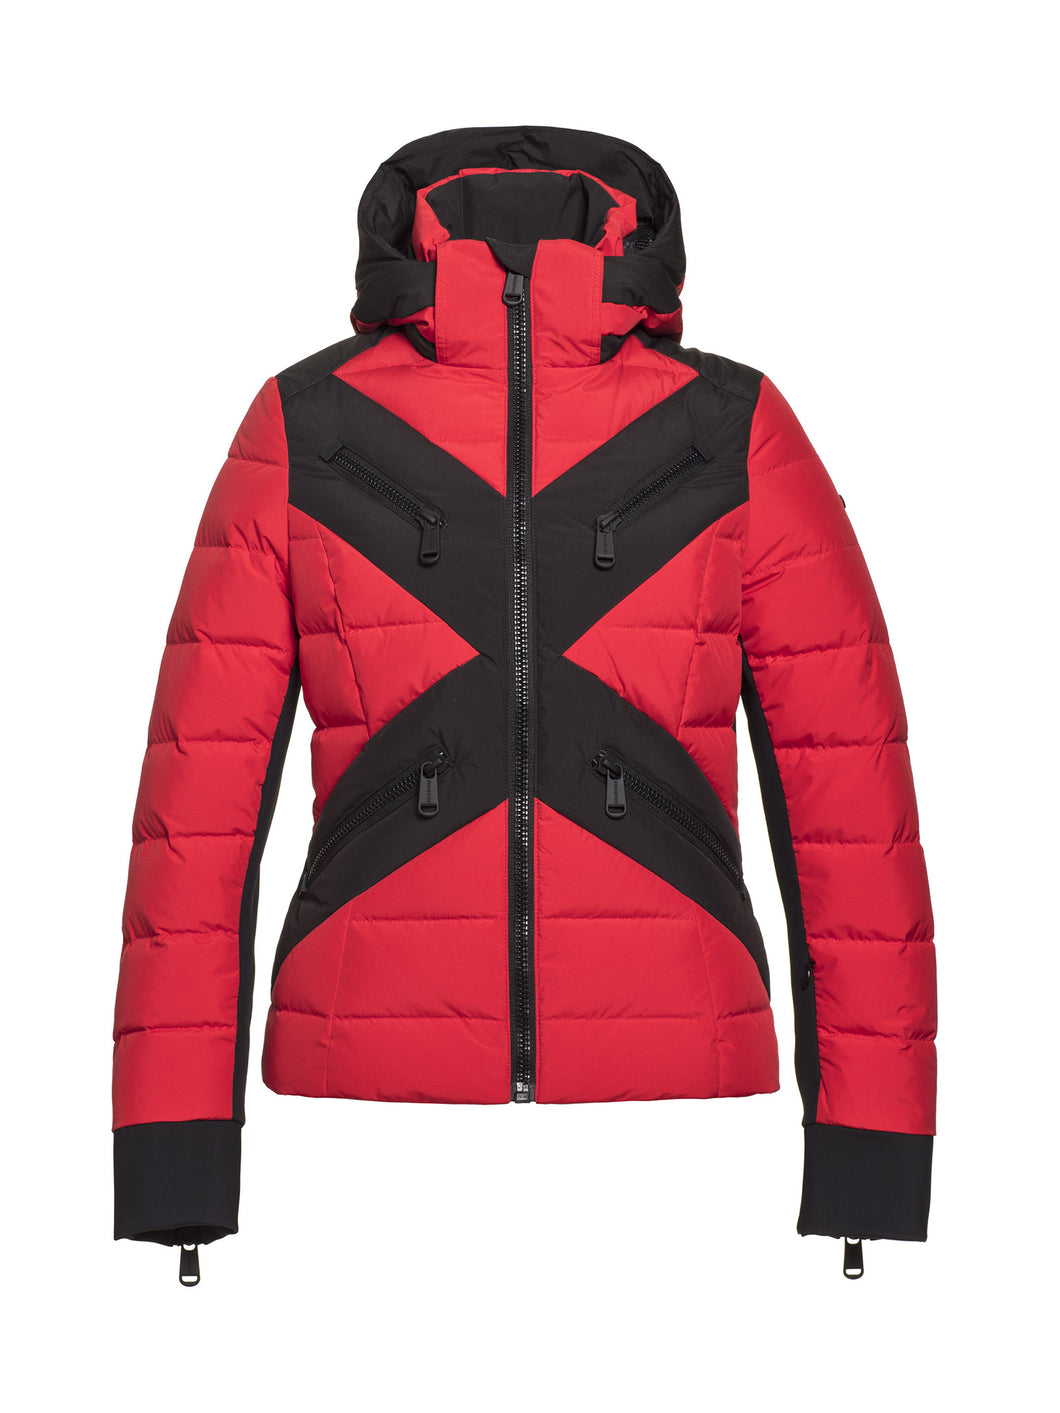 Cross, Laides Woven Ski Jacket - Red